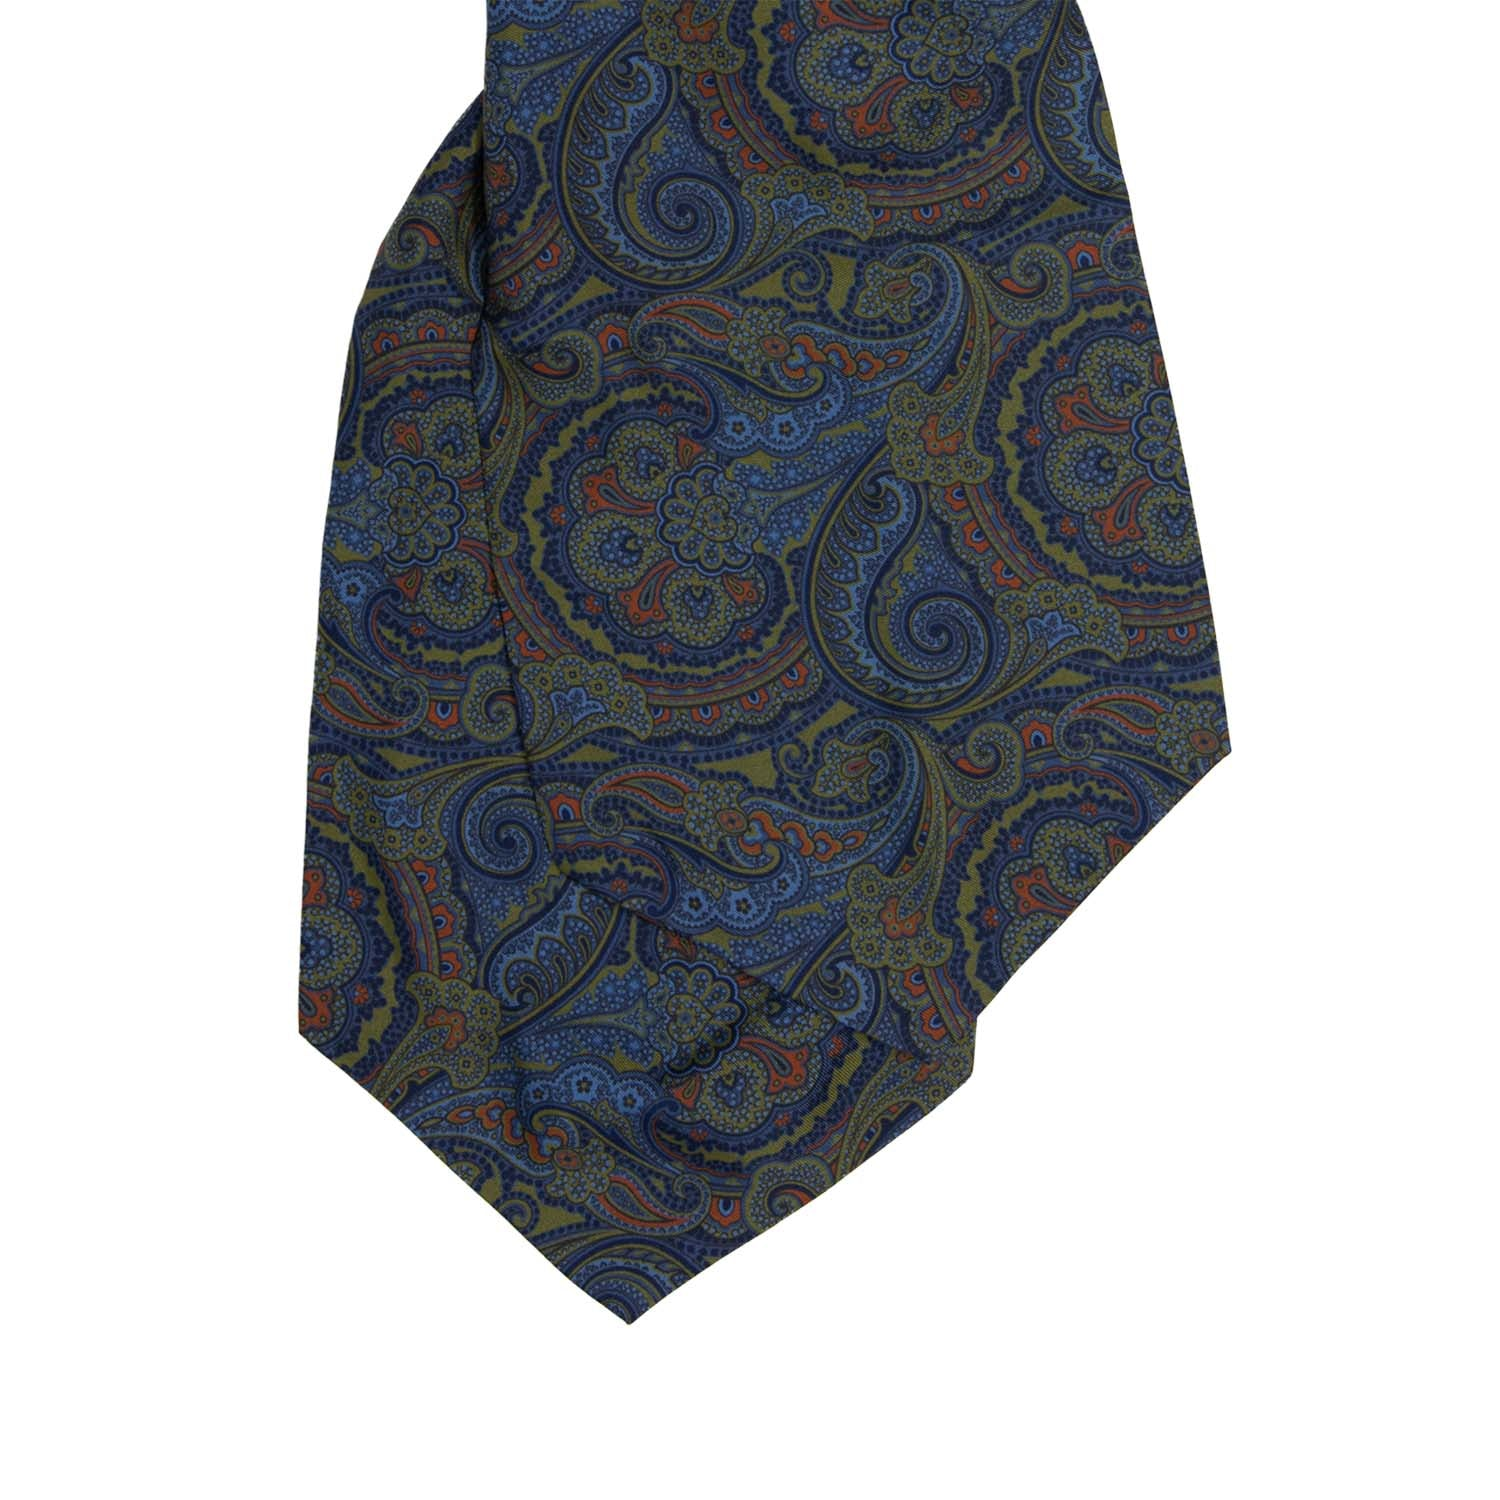 serà fine silk - Blue and Green Paisley Silk Ascot